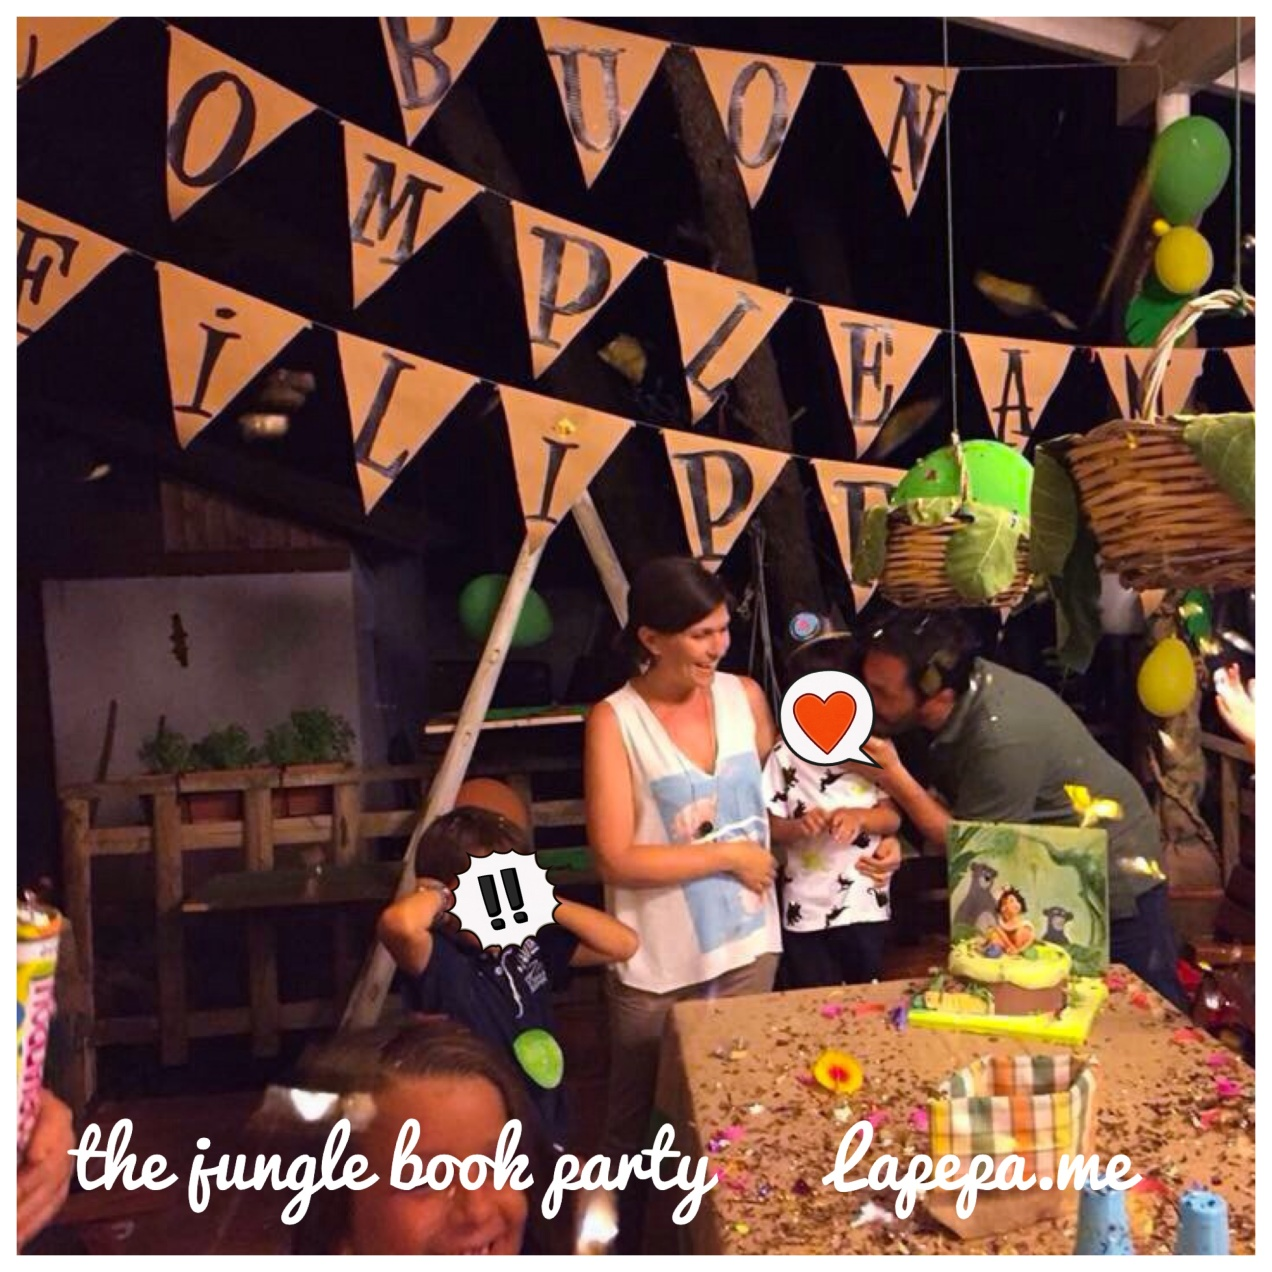 the jungle book party decorations